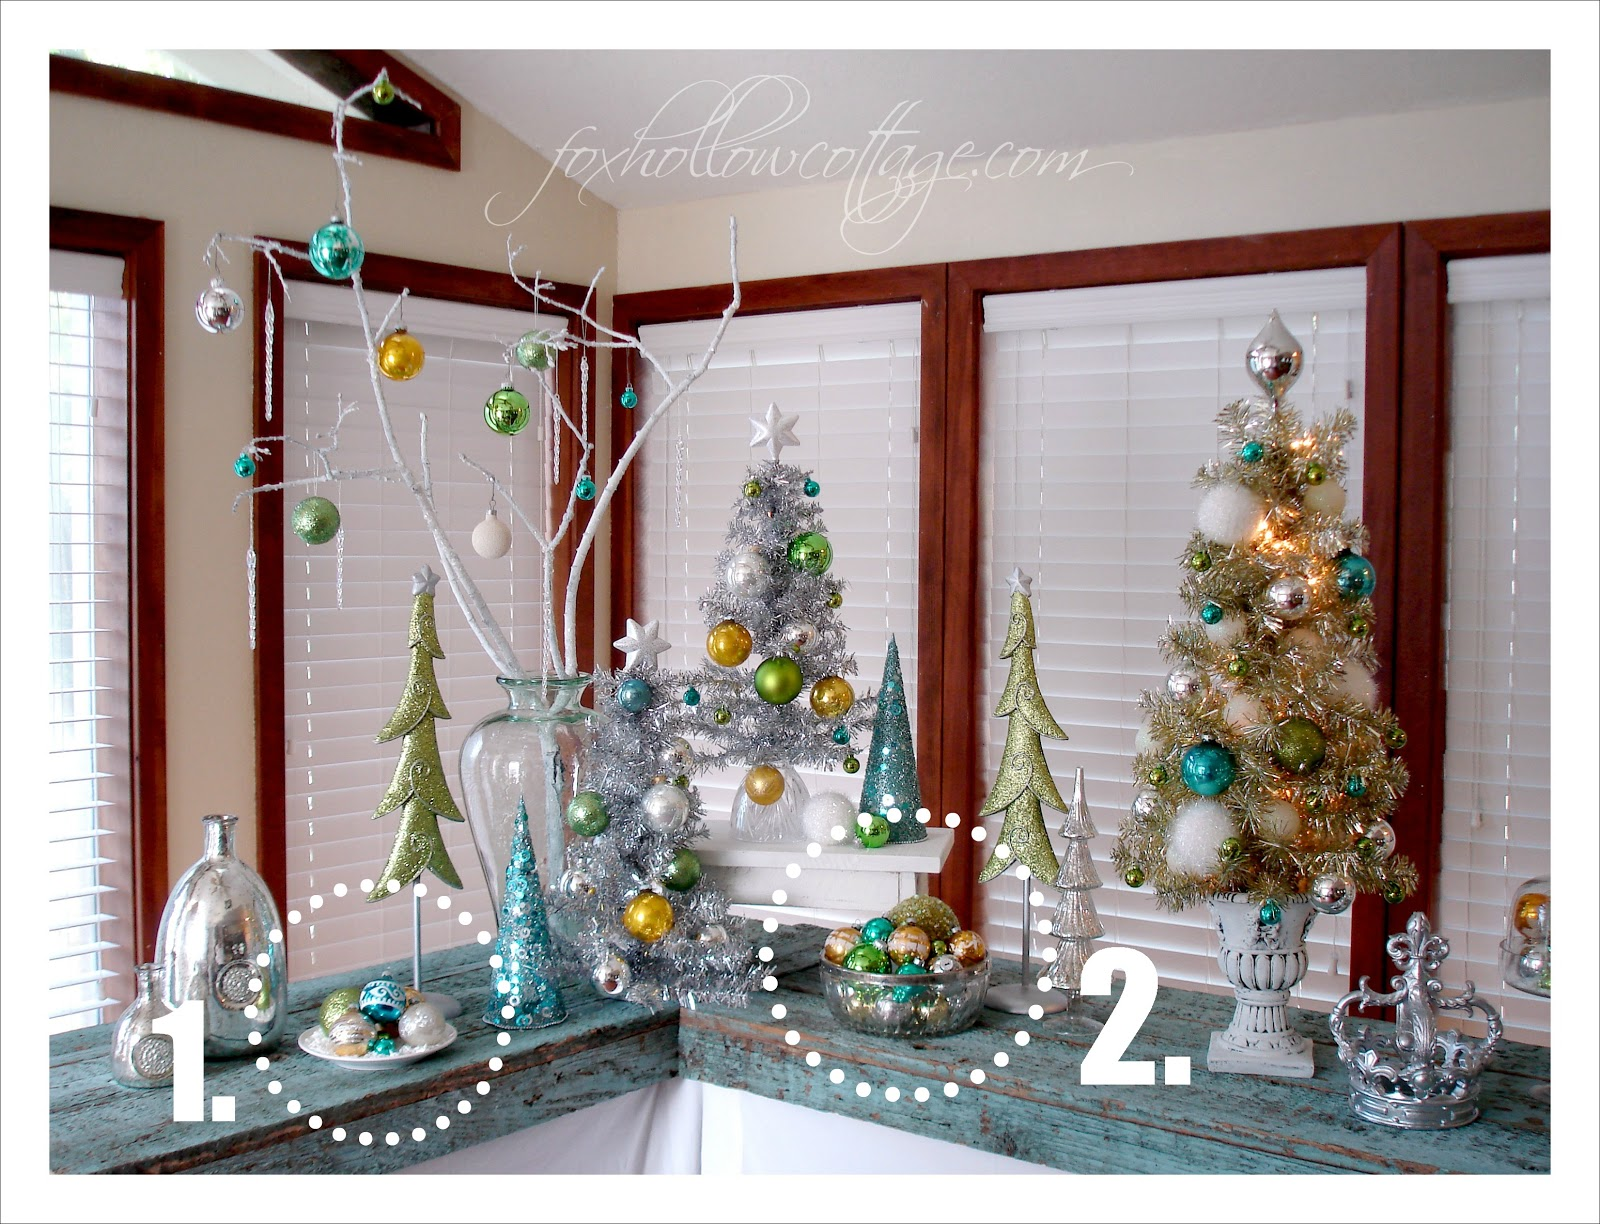 10 quick ideas for decorating with christmas ornaments for Decor quick